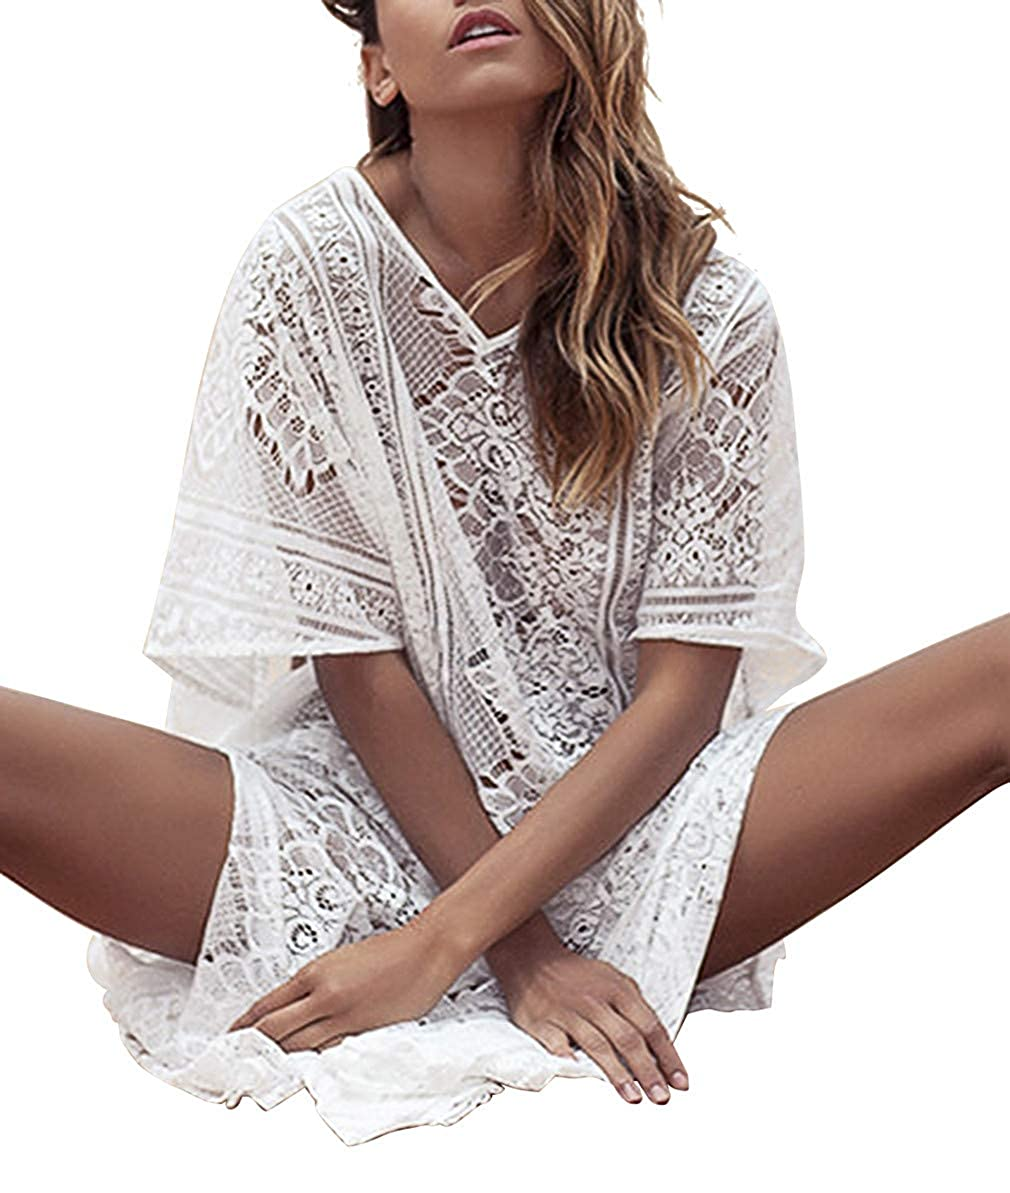 a8790dc02592e Chic Lace Mesh Maxi Bikini Cover Up Dresses Boho Beach Dress Long Beach  Cover Up for Women and Ladies. Features: Short sleeve, Loose style, V Neck,  ...